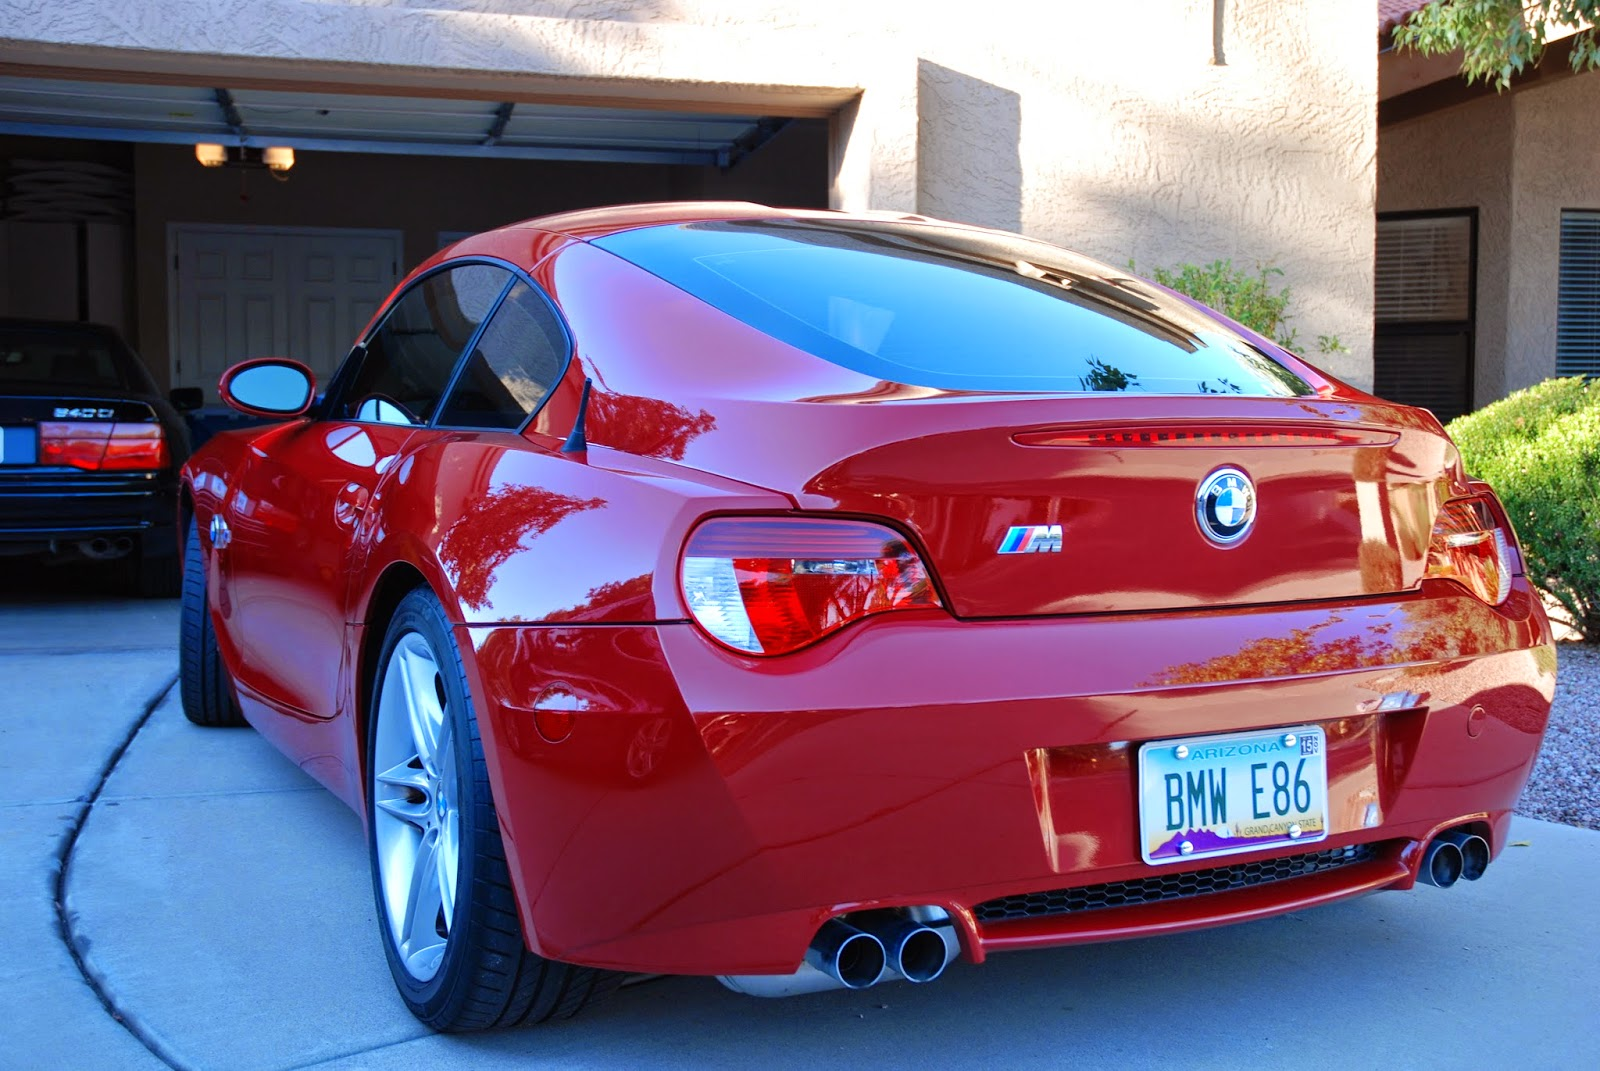 Scottsdale Sales Tax >> 2007 Z4 M Coupe for sale in AZ